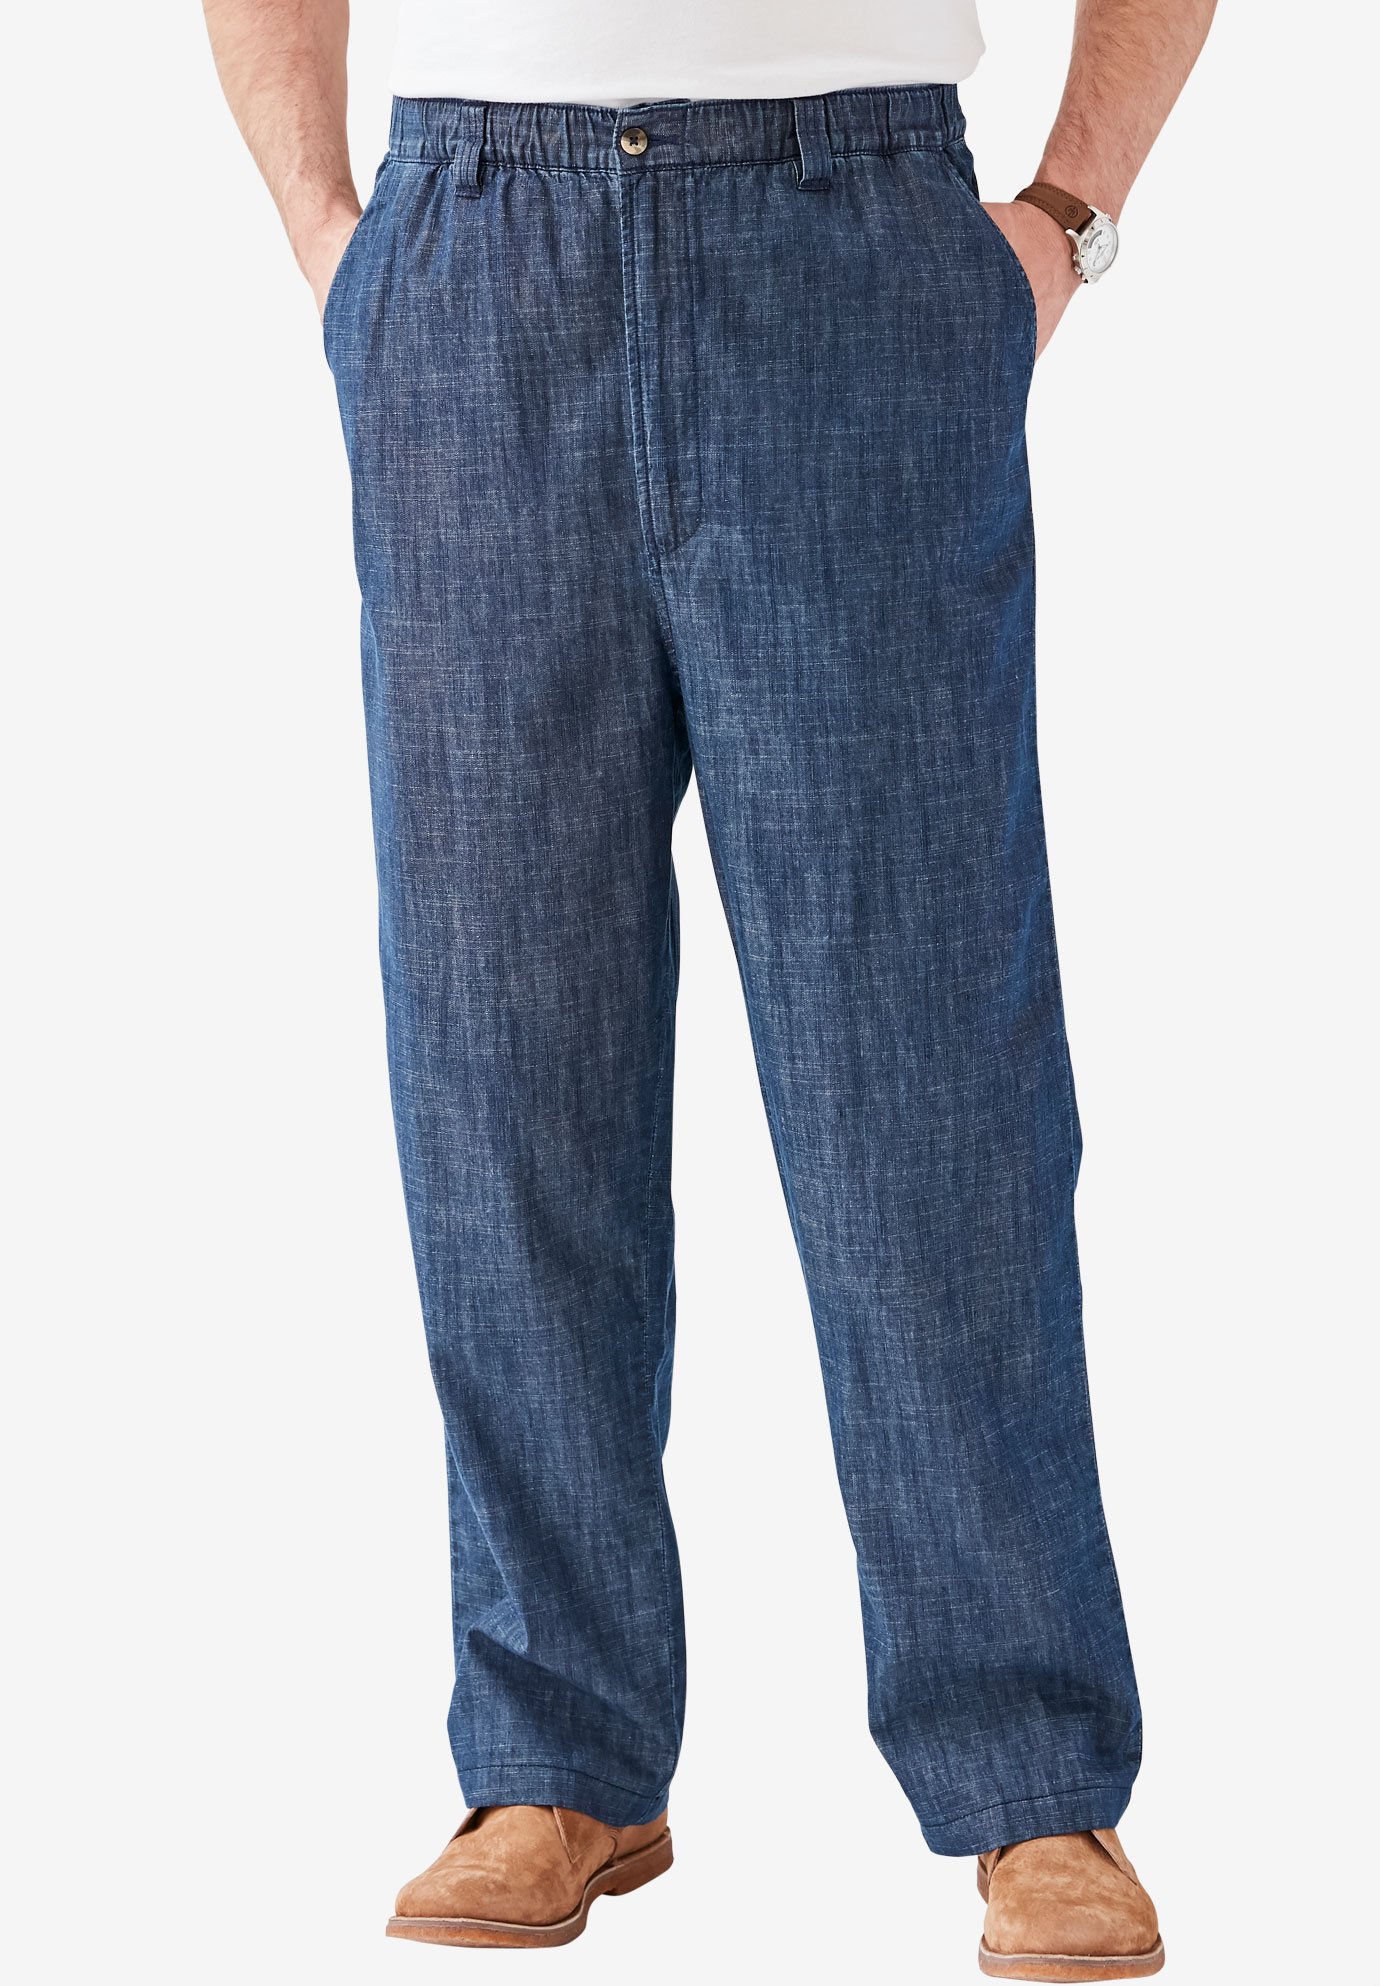 Elastic Waist Pants in Twill or Denim,